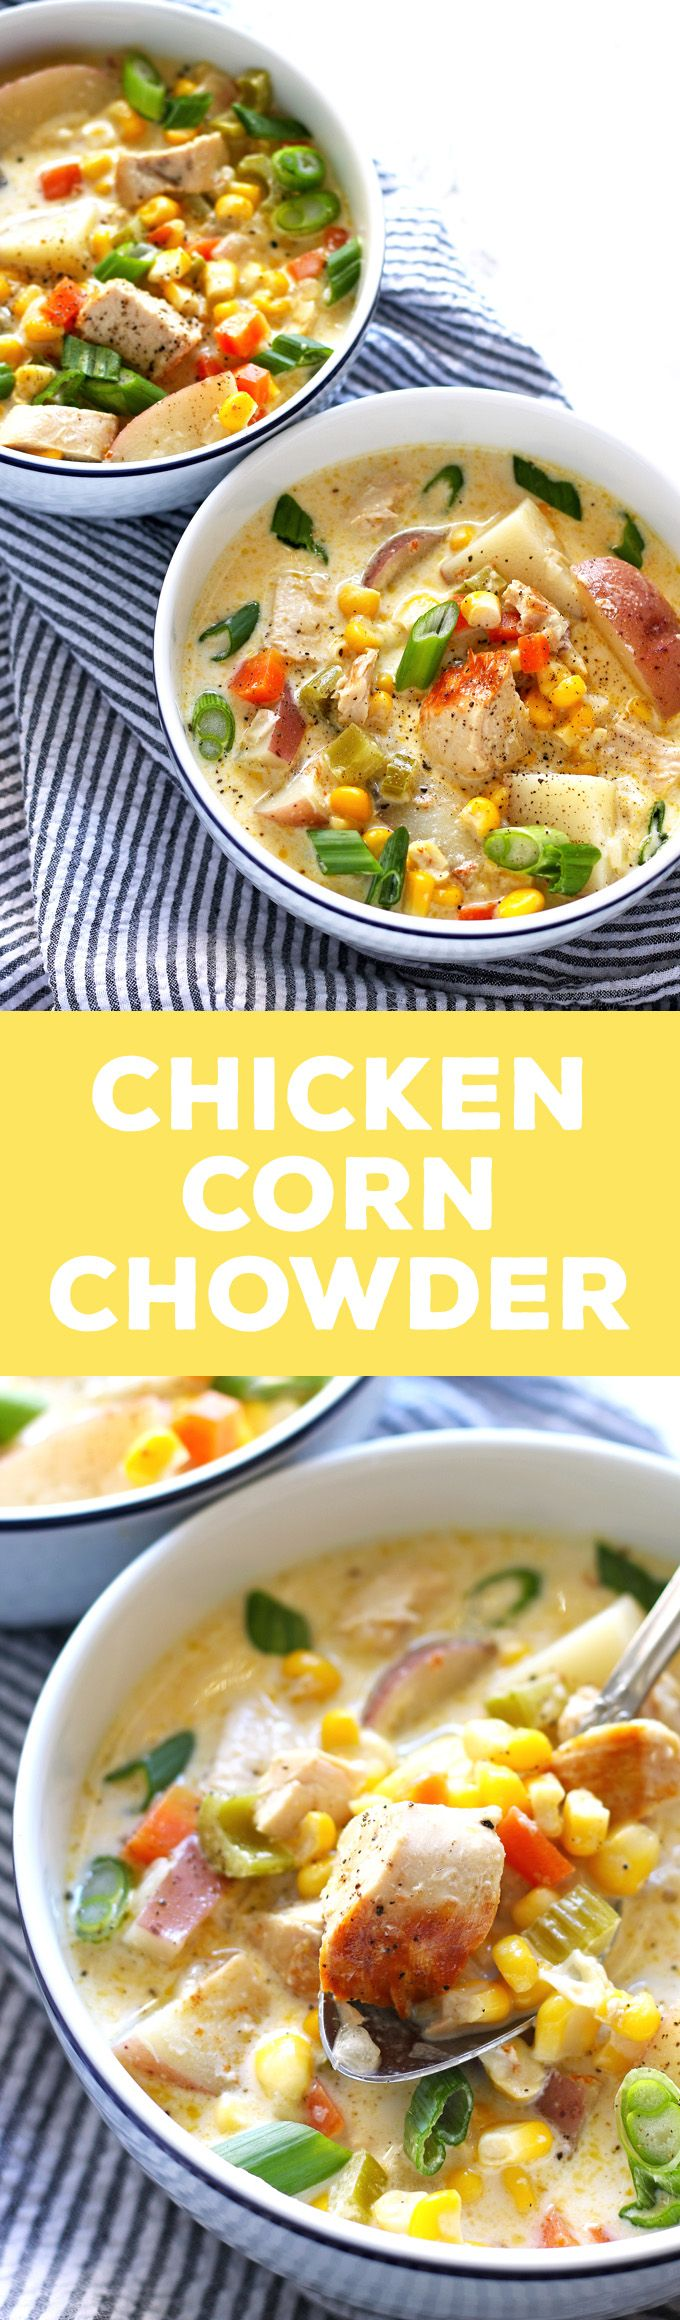 100+ Corn Chowder Recipes Chowders, Chowder Recipes